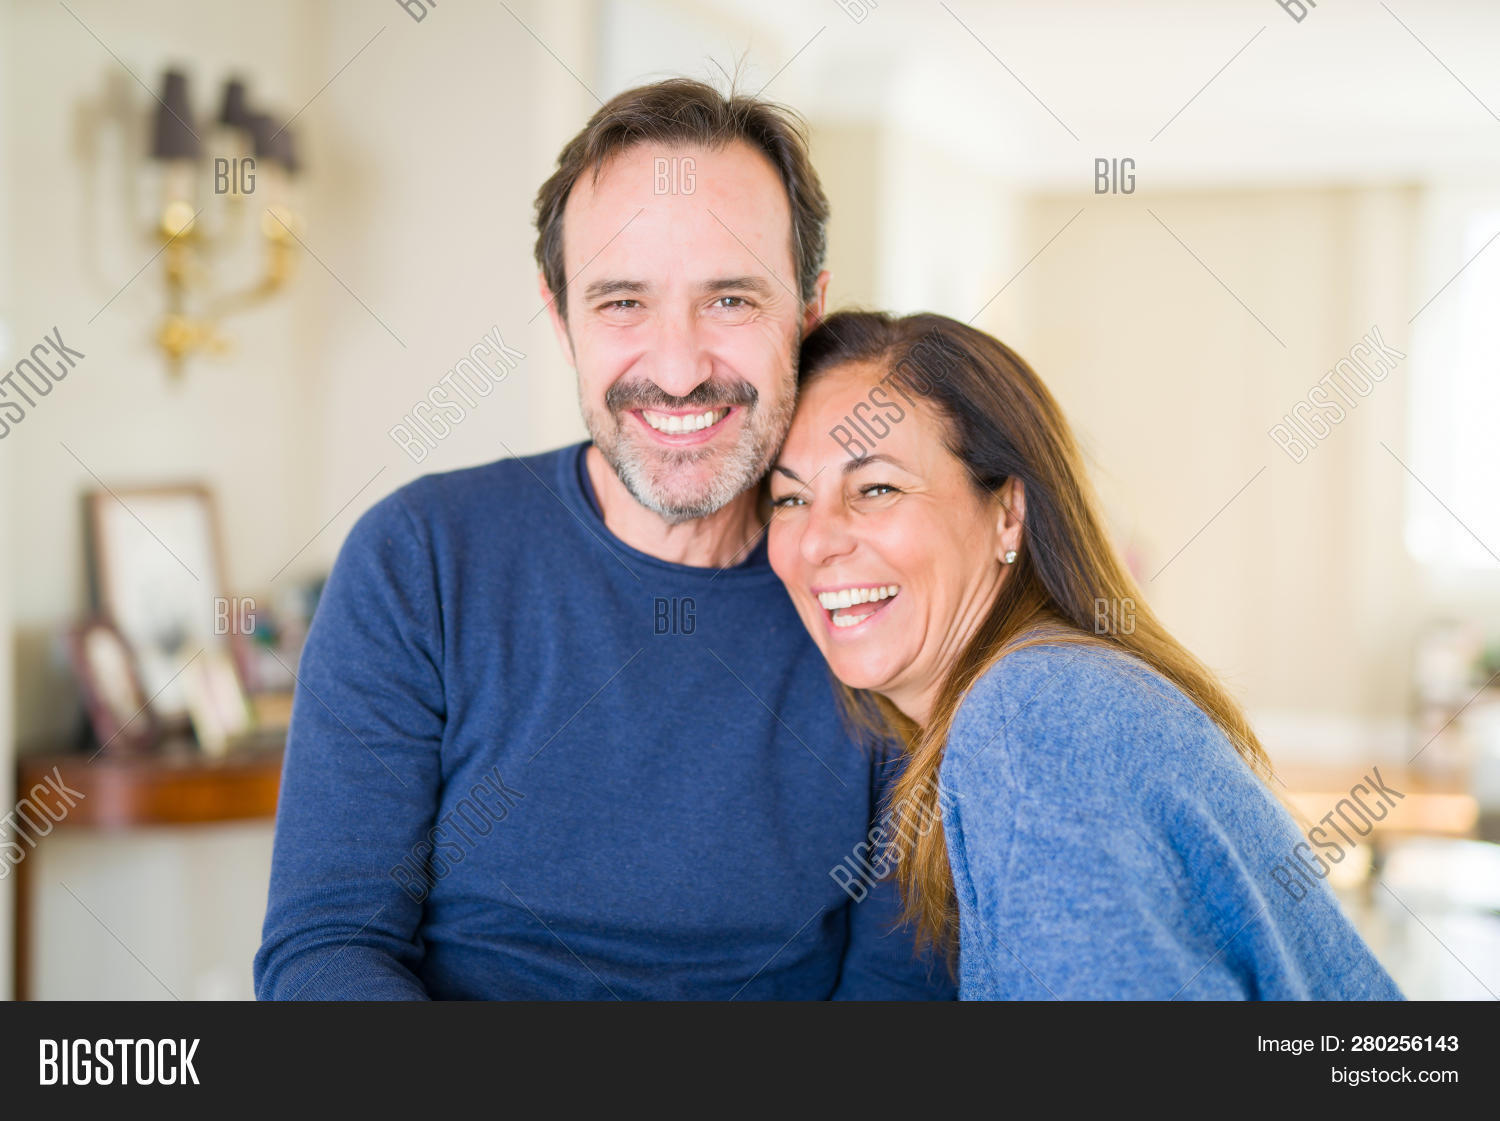 40,50,adult,affection,age,aged,beautiful,caucasian,cheerful,couple,elderly,expression,family,gesture,grey,hair,handsome,happy,healthy,home,house,husband,indoor,lifestyle,looking,love,man,mature,middle,middle age,old,people,person,portrait,relationship,retirement,romance,romantic,senior,sitting,smile,table,teeth,together,two,white,wife,woman,years